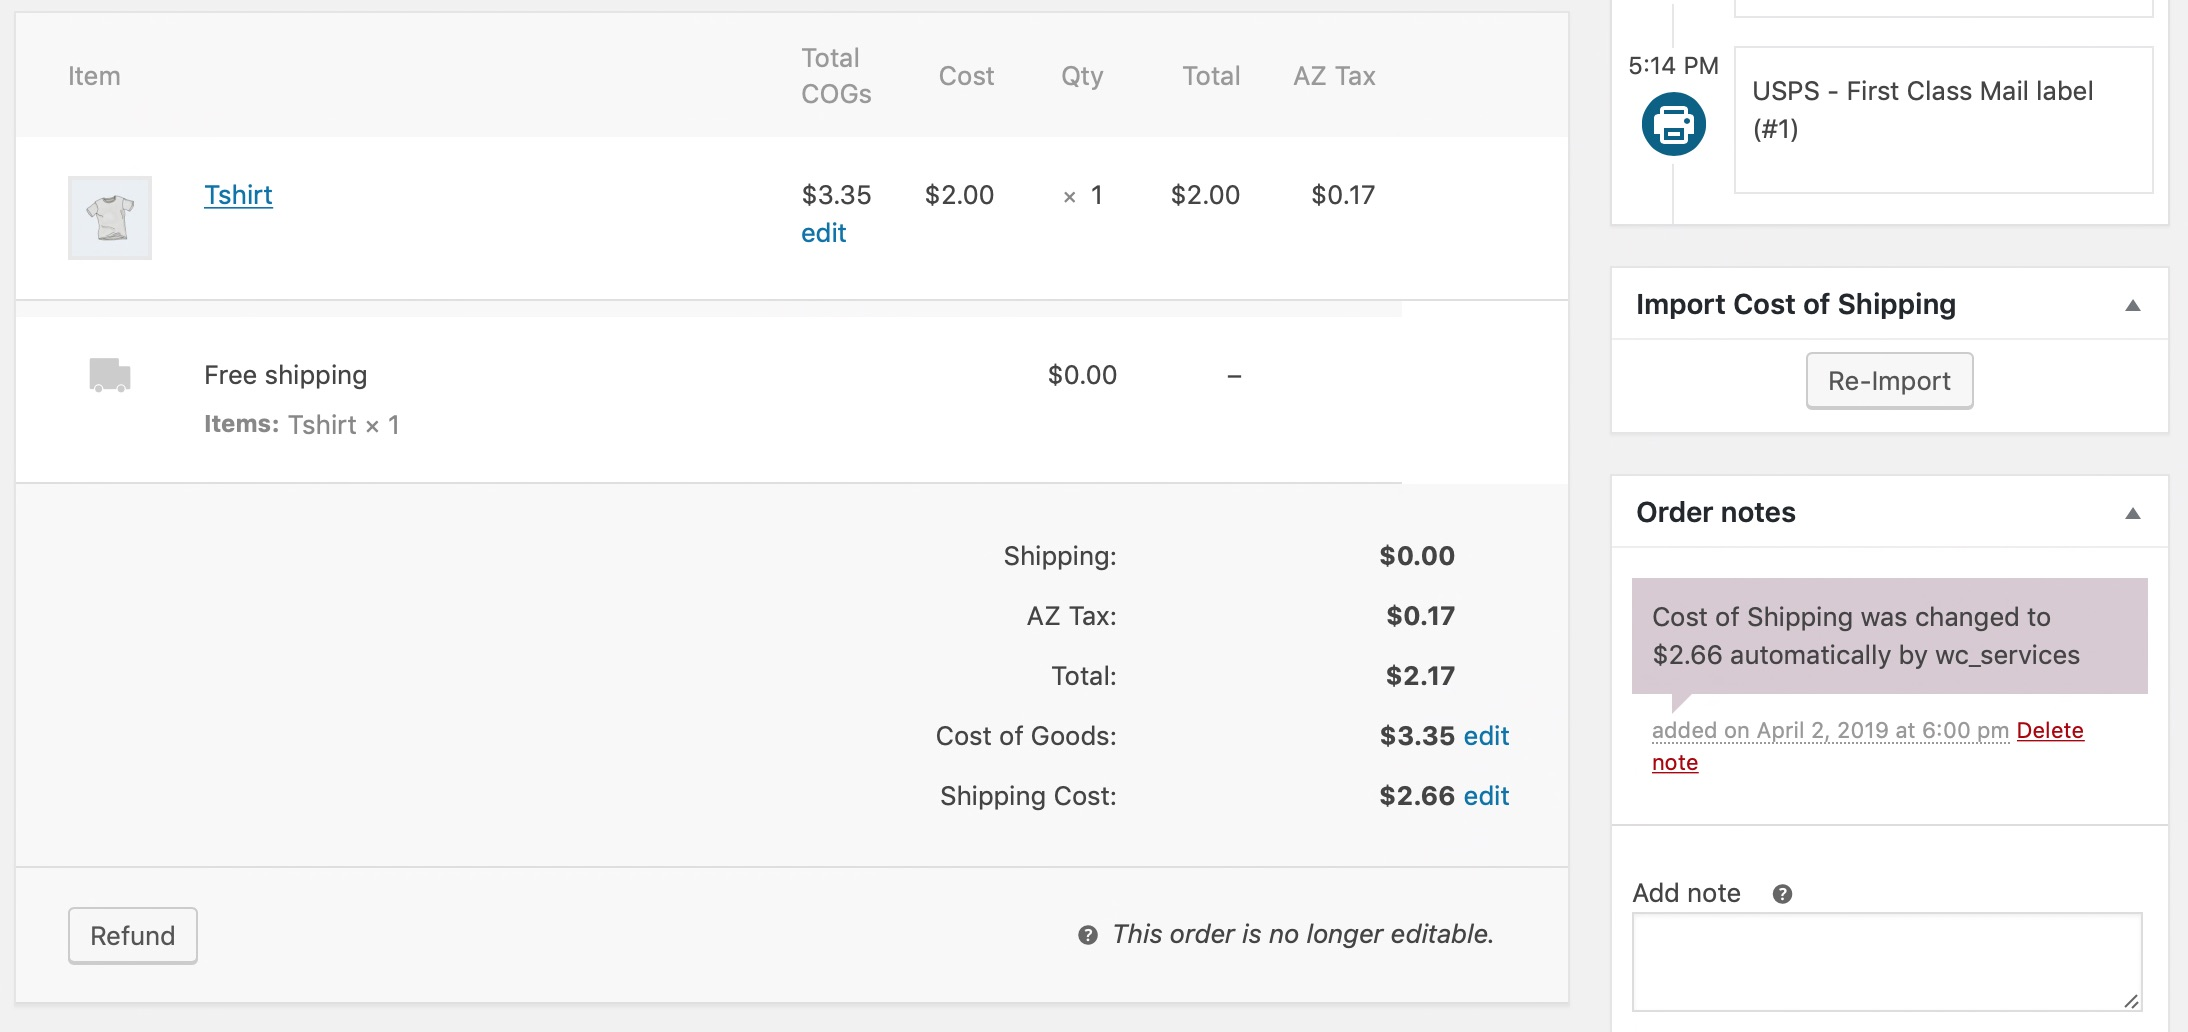 Shows the meta box on the right to import Cost of Shipping, the order note put in, and the Cost of Shipping